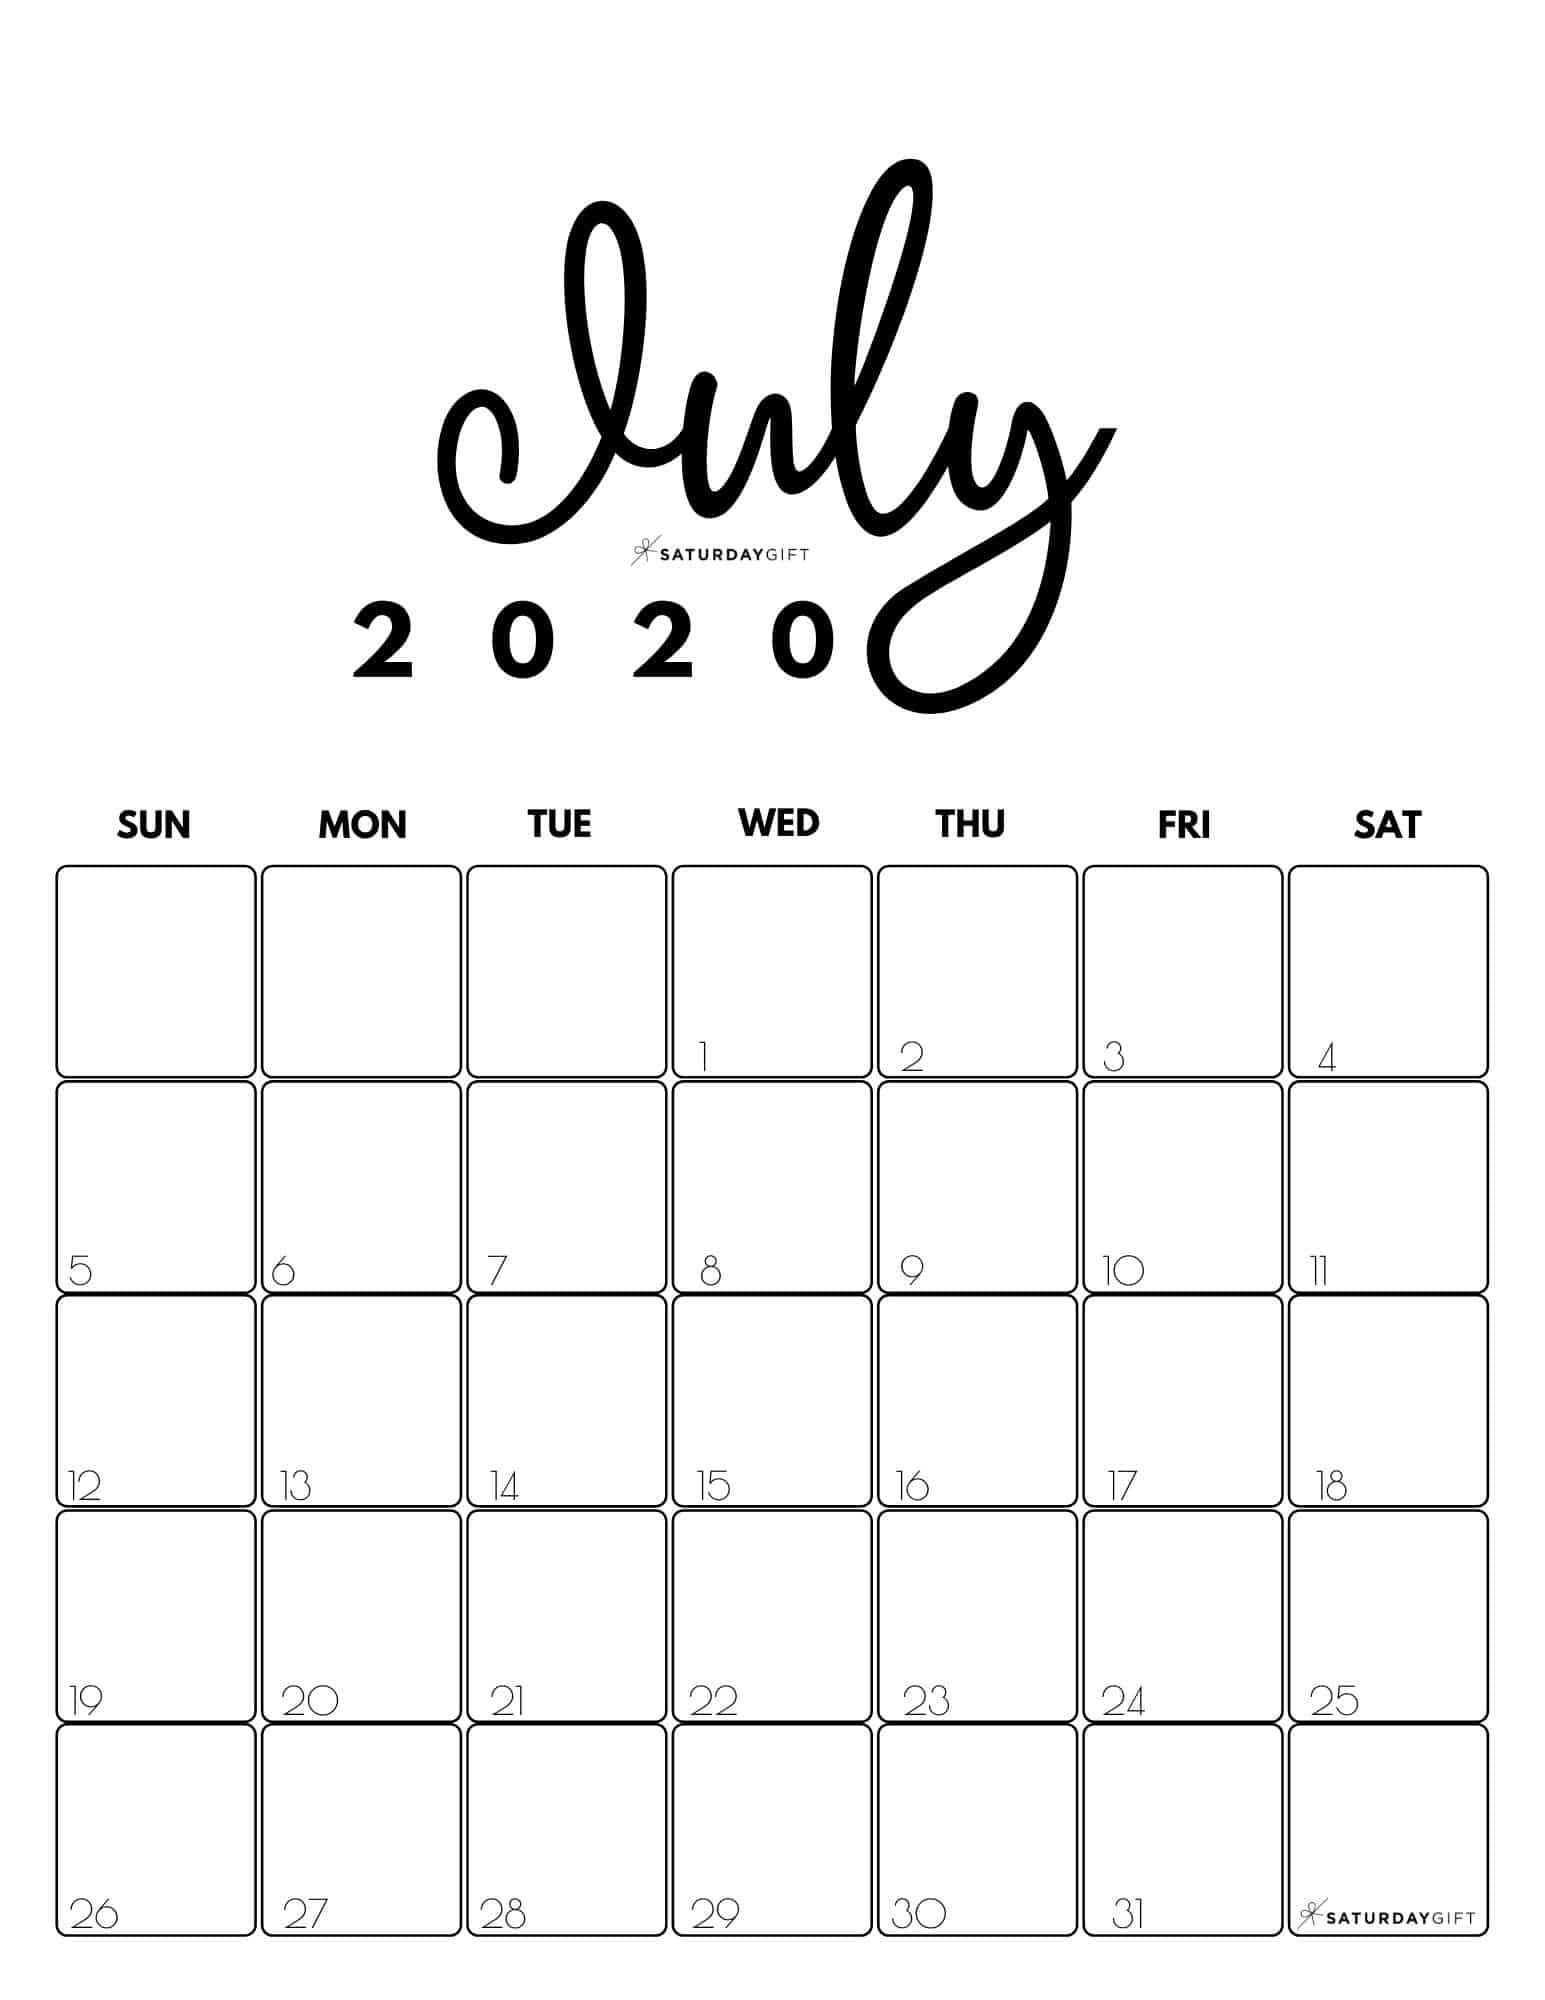 Cute Free Printable July 2021 Calendar Saturdaygift In 2020 July Calendar Cute Calendar Calendar Design